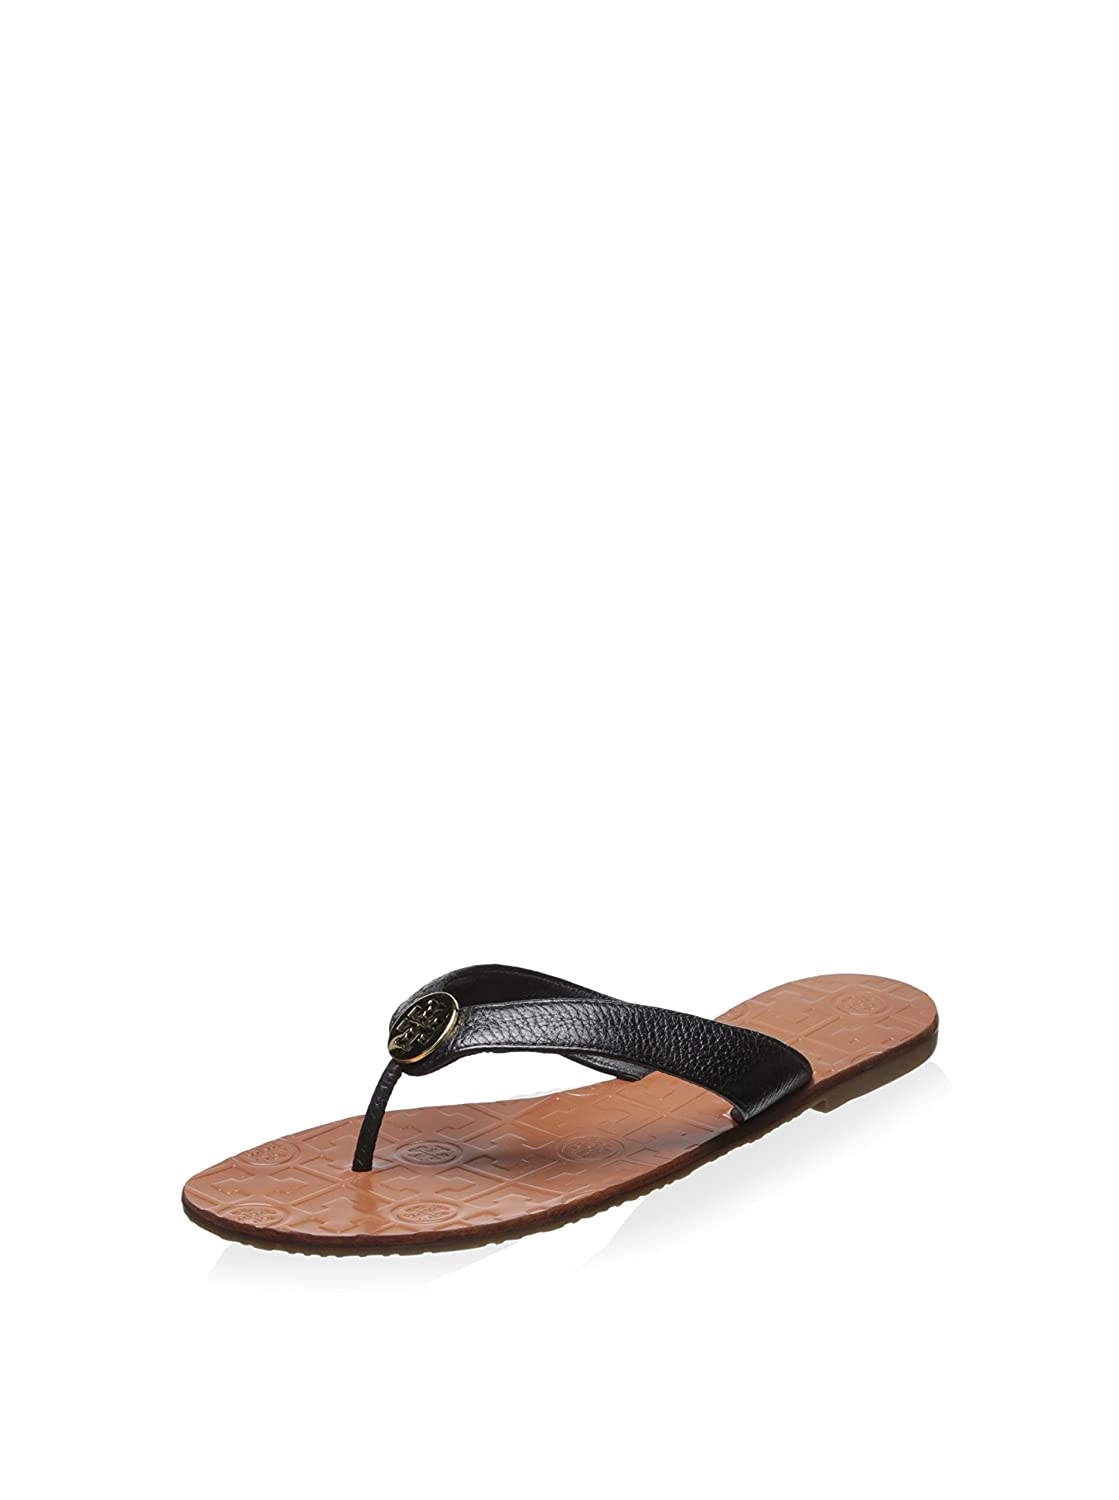 d611e5b8d9f Tory burch womens thora flat thong sandal black gold us flip flops jpg  1119x1500 Bogan thong